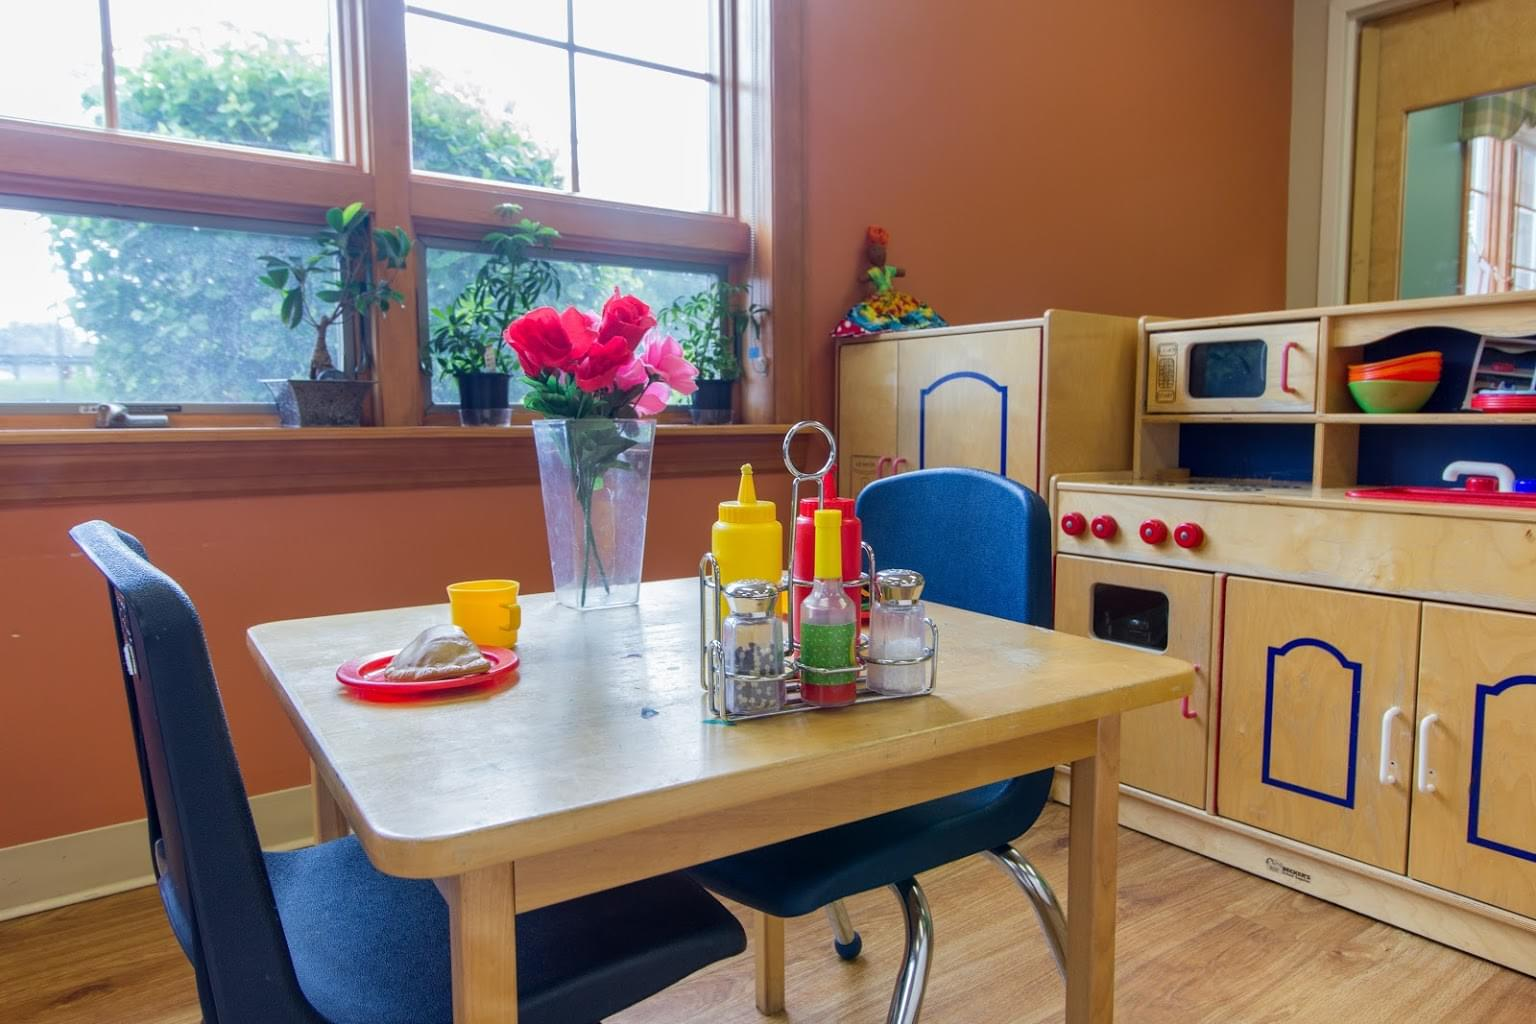 dining set at Lightbridge Academy pre-school and daycare in Manasquan, NJ